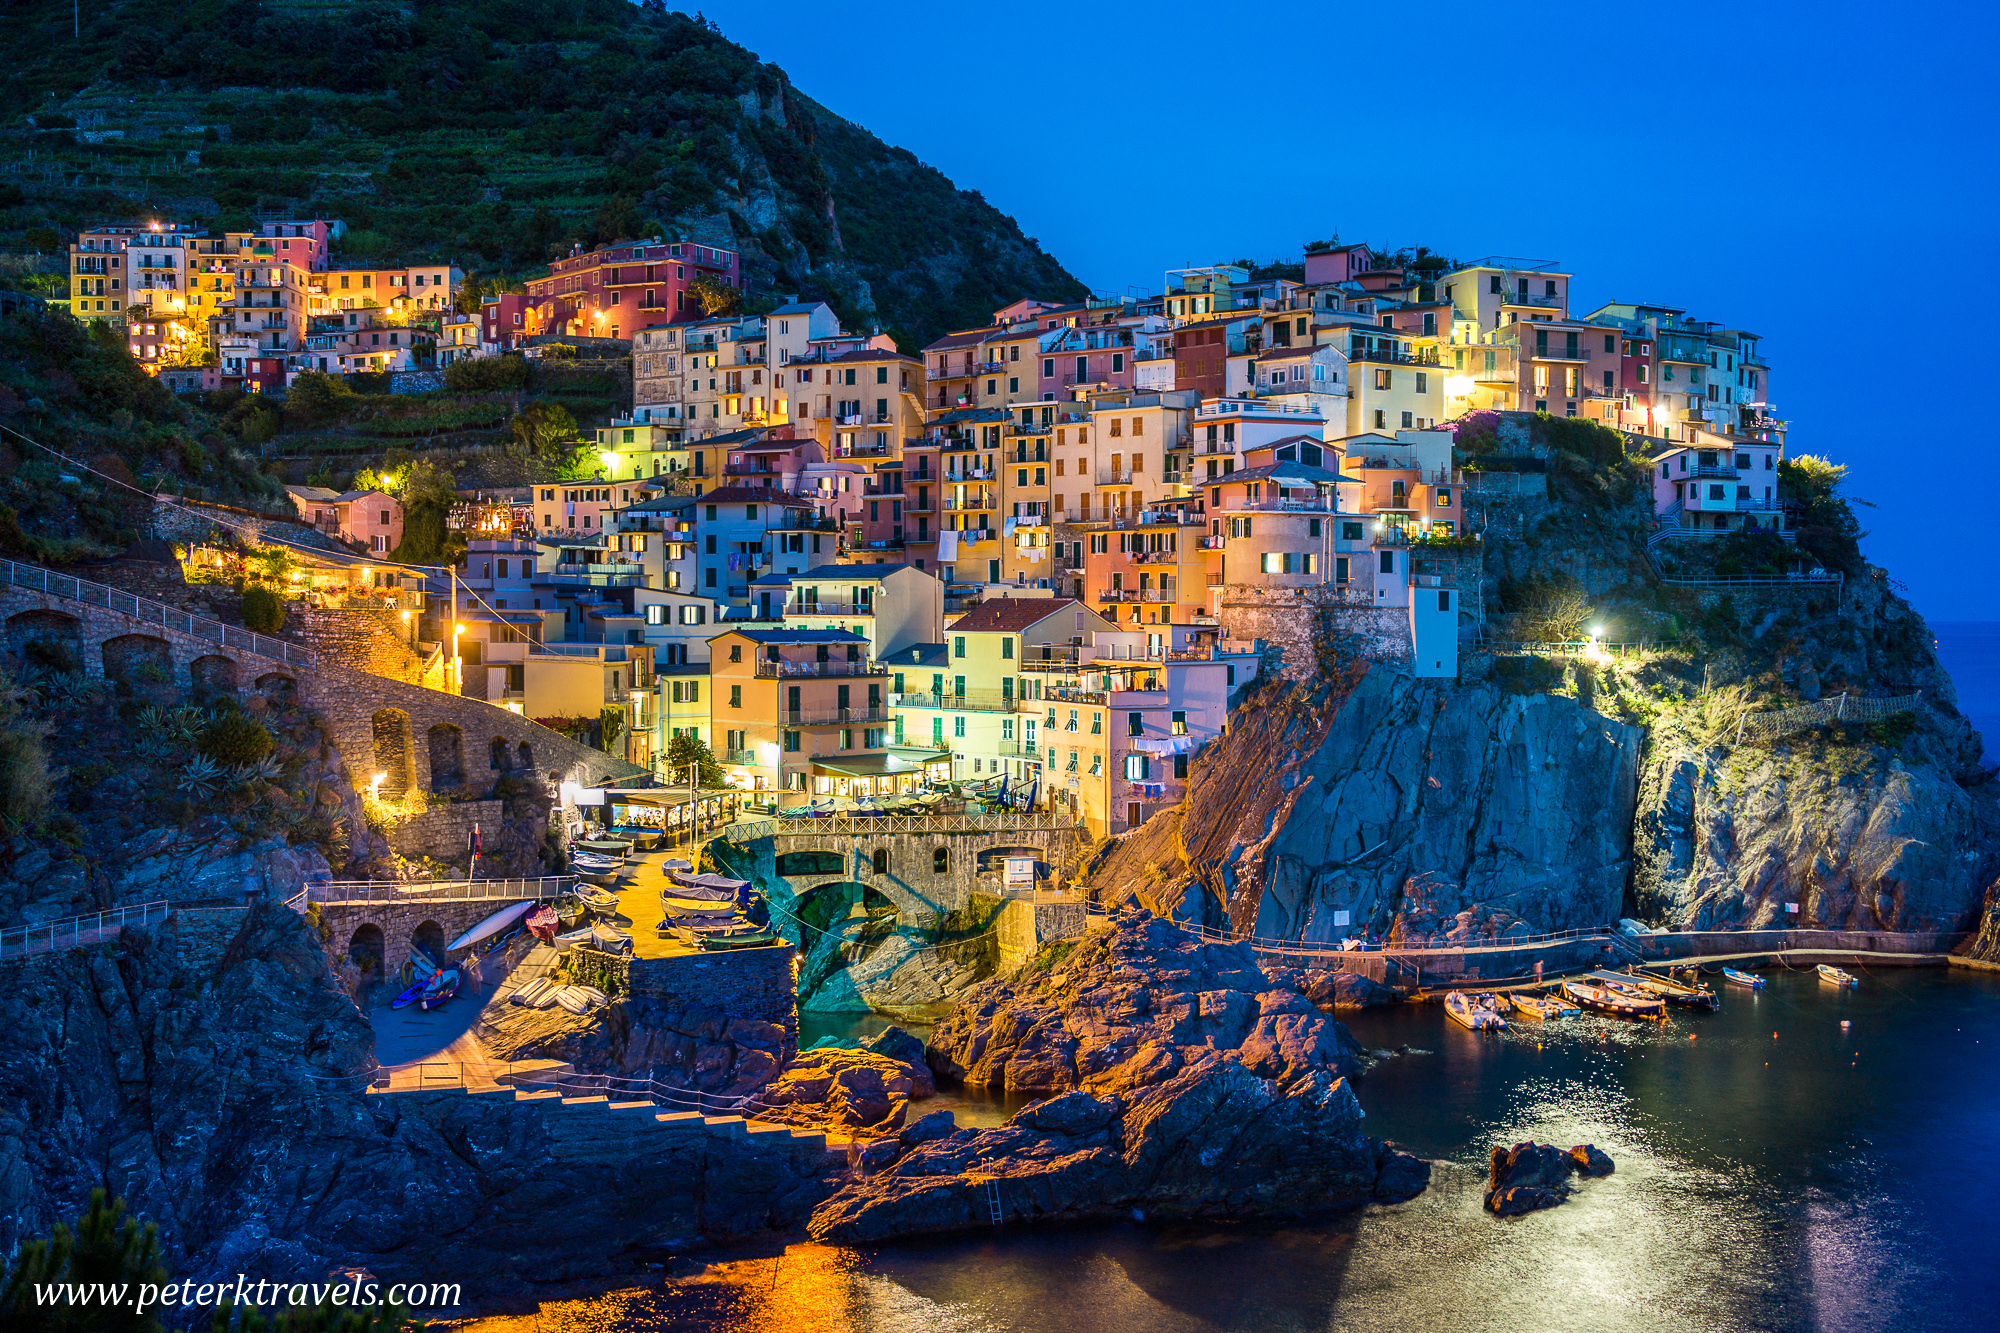 The 100 Most Beautiful Places in the World in Pictures